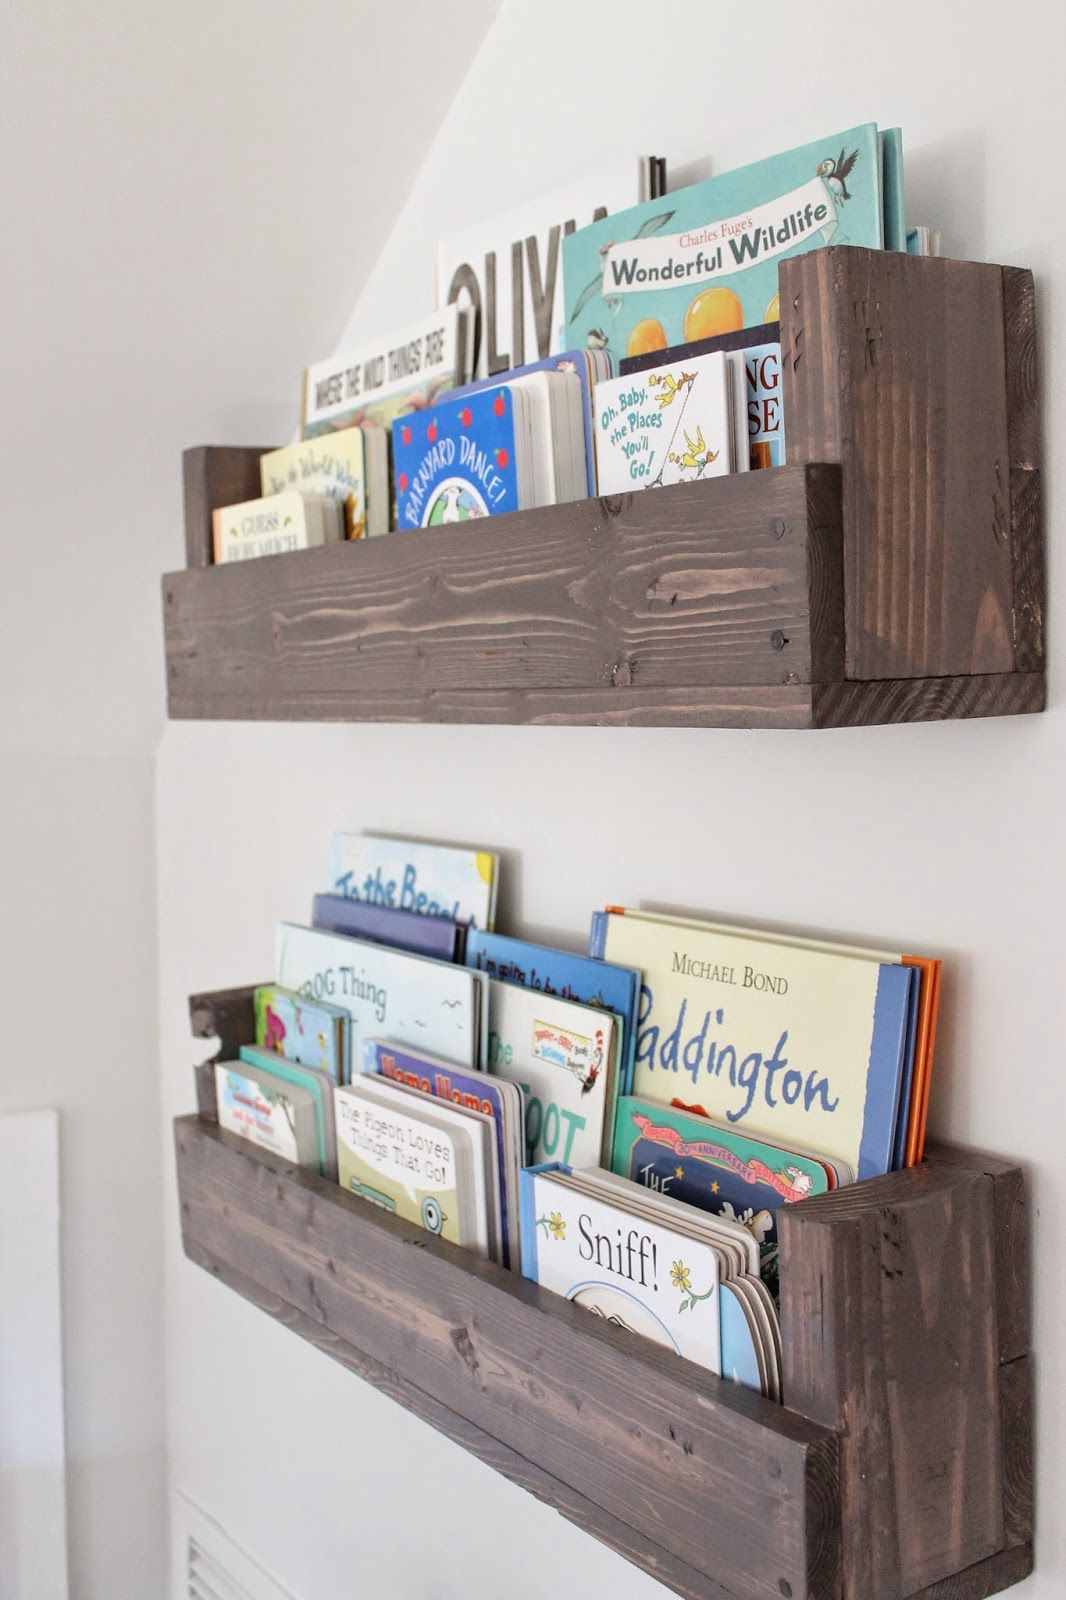 3 basic woodworking tips to help you get started - | book nooks